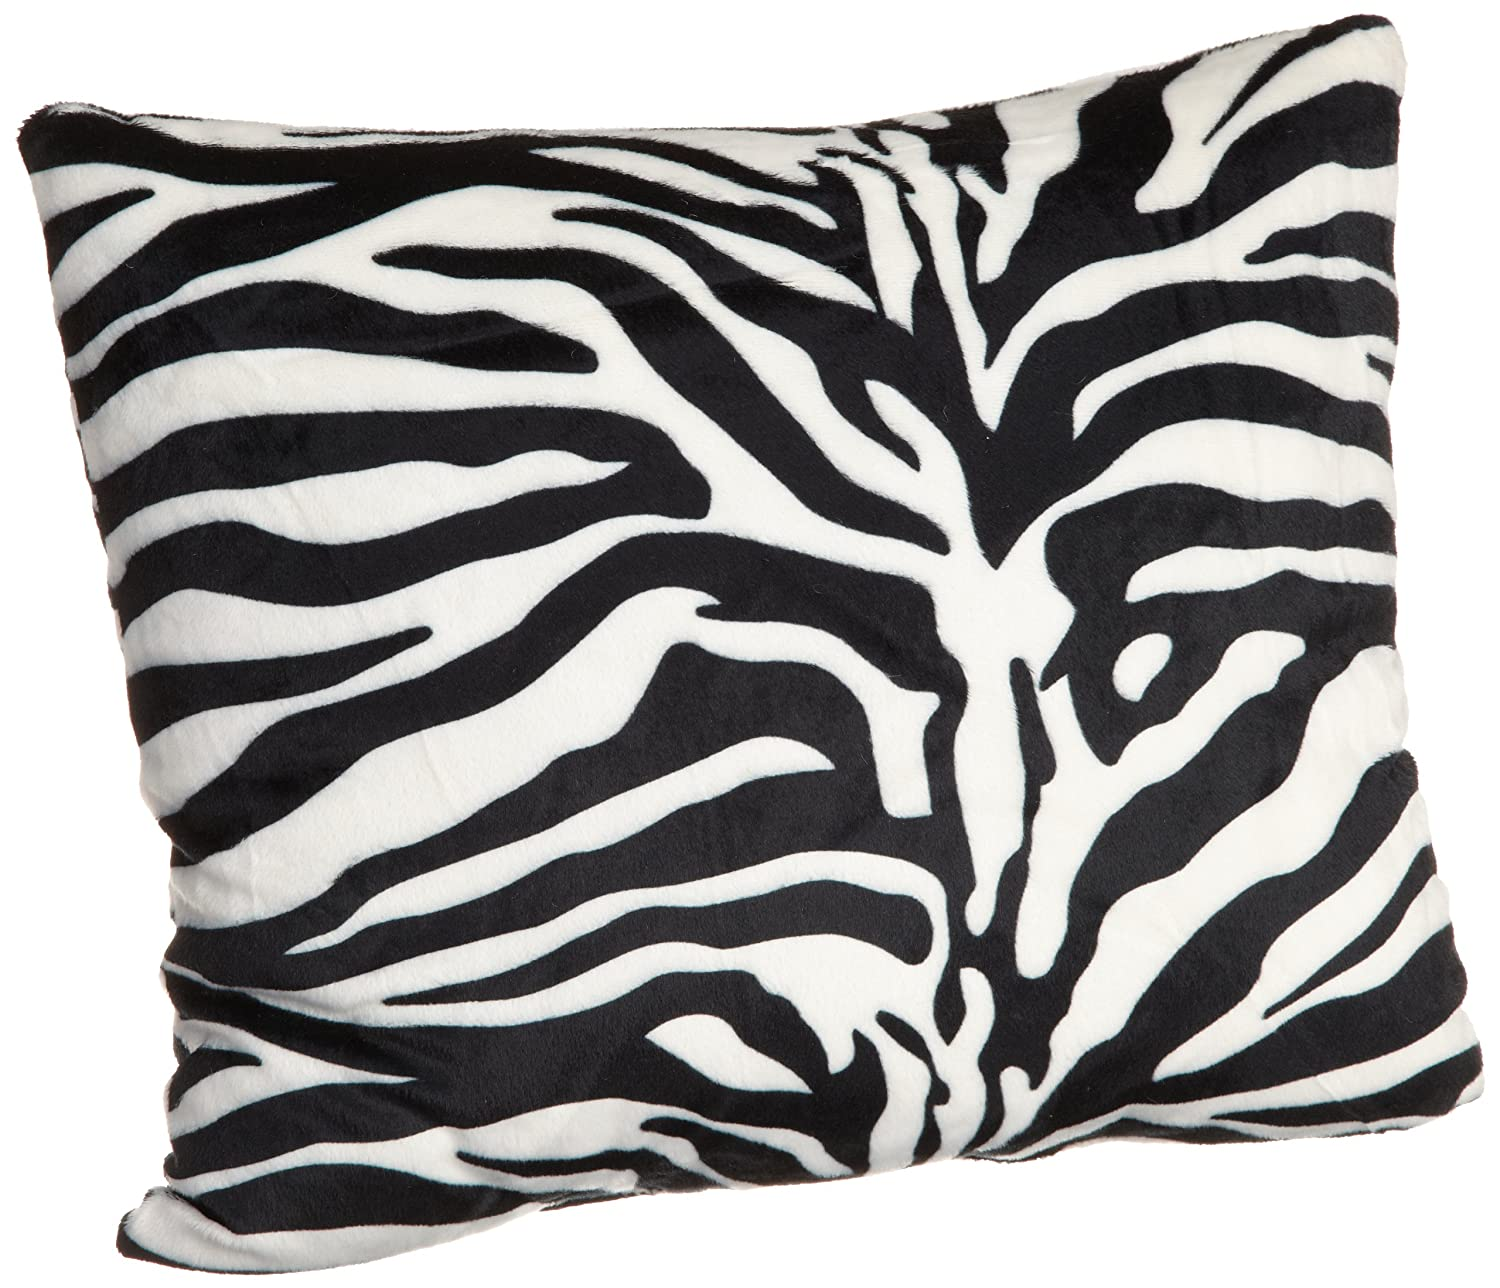 il fullxfull print animal listing zoom inch black pillow cover throw pillows decorative